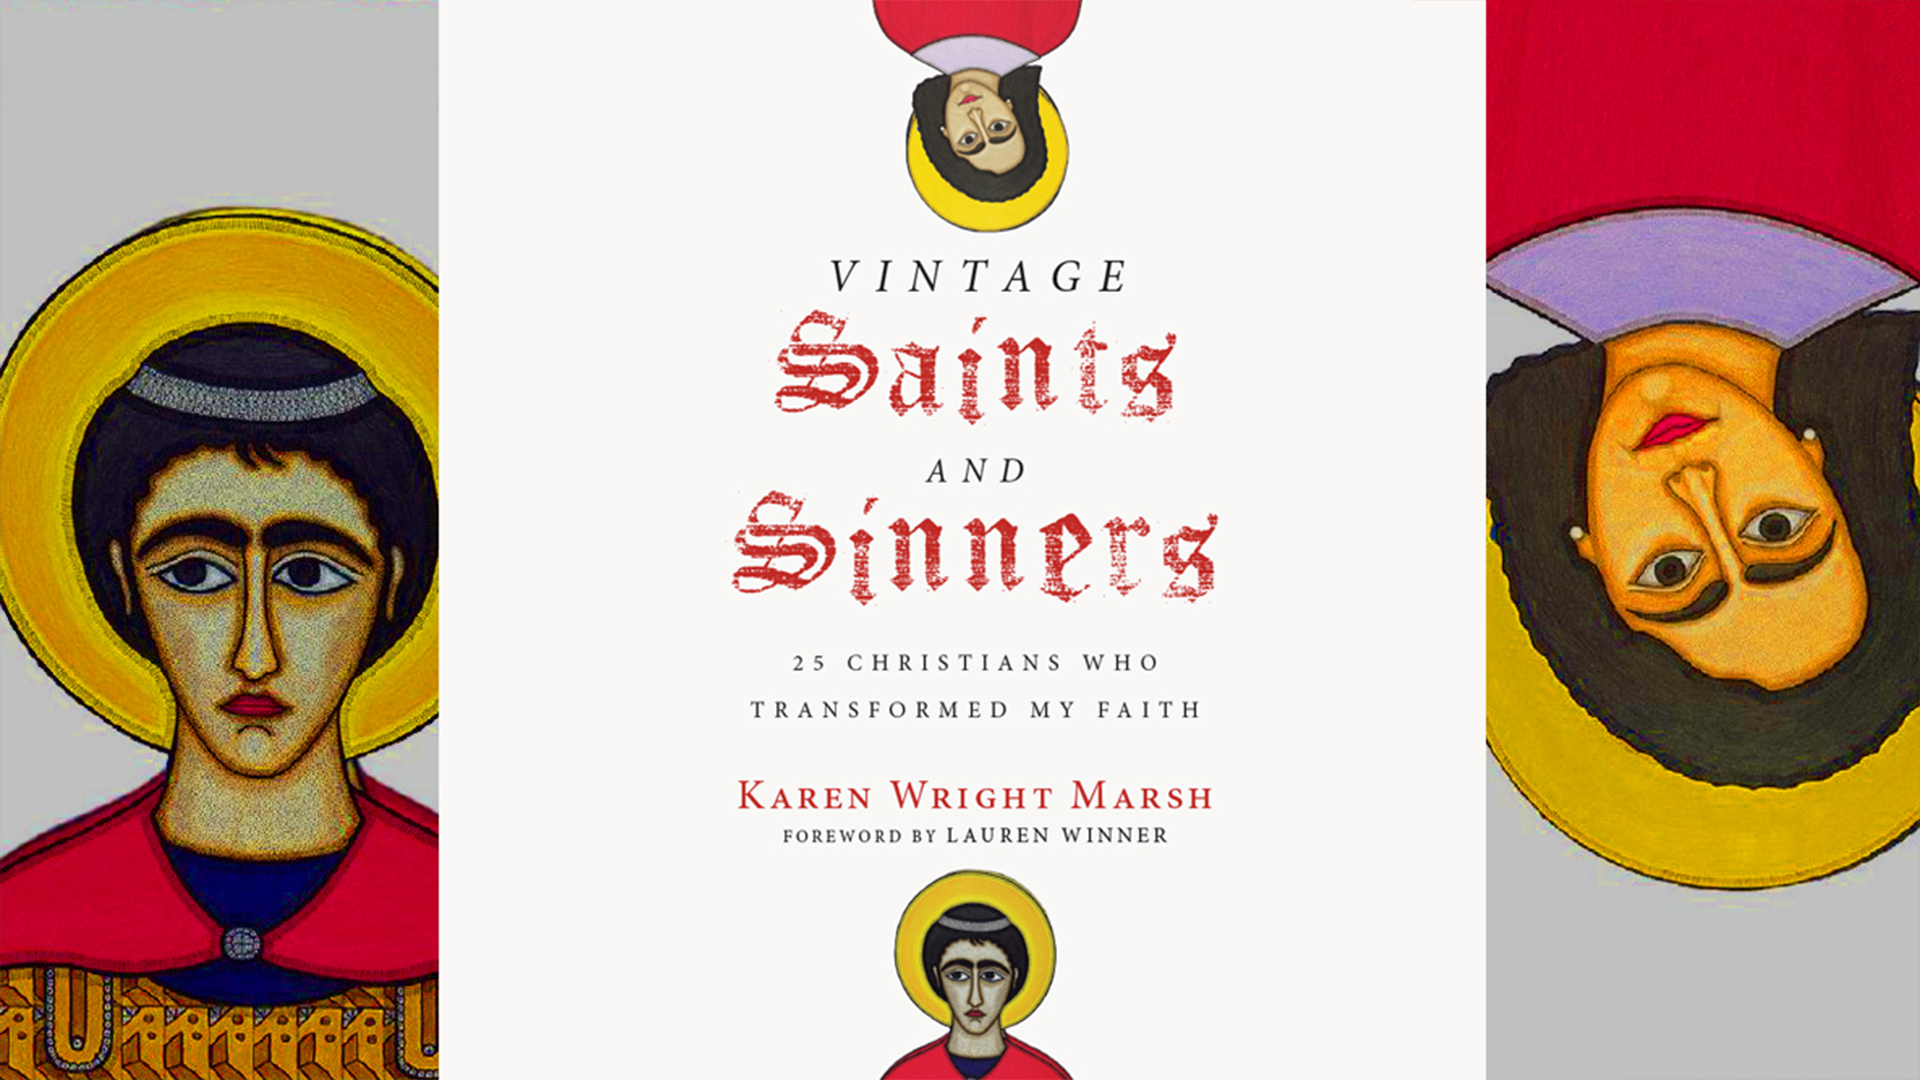 Vintage Saints and Sinners SCREEN GRAPHIC.jpg